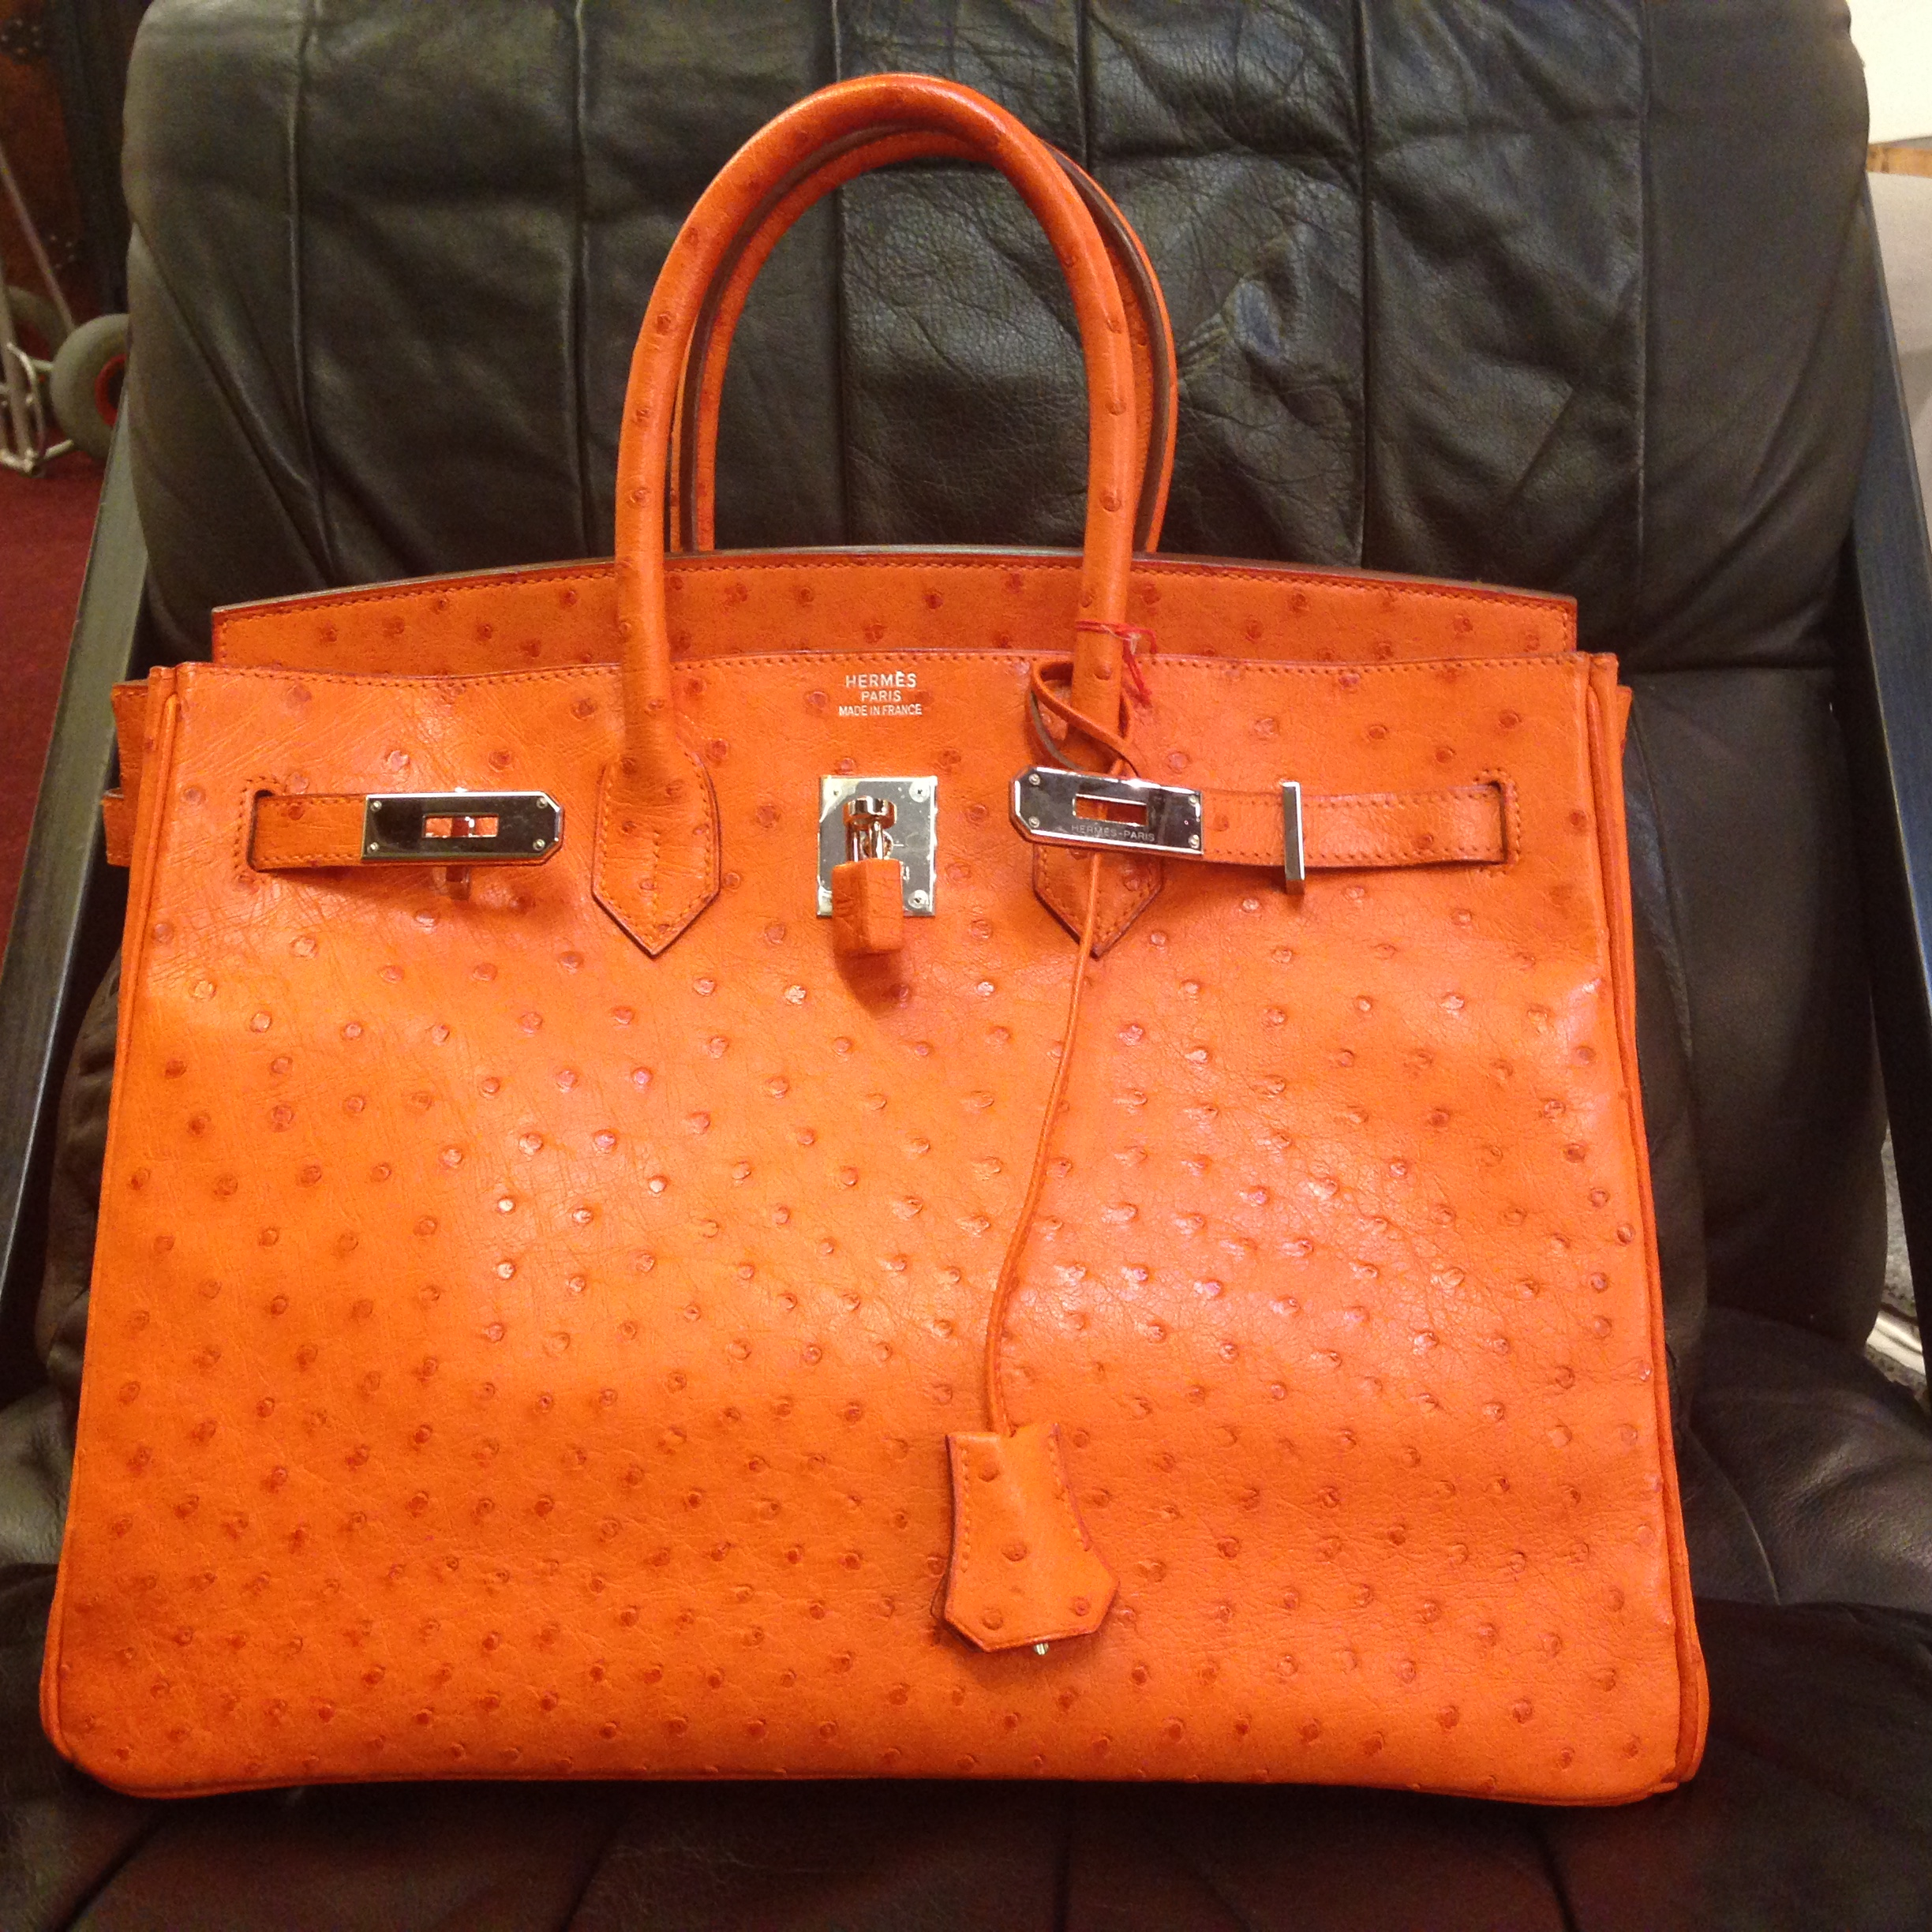 6660d9fd14d7 2006 orange ostrich Hermes Birkin bag   Paul Bert Serpette